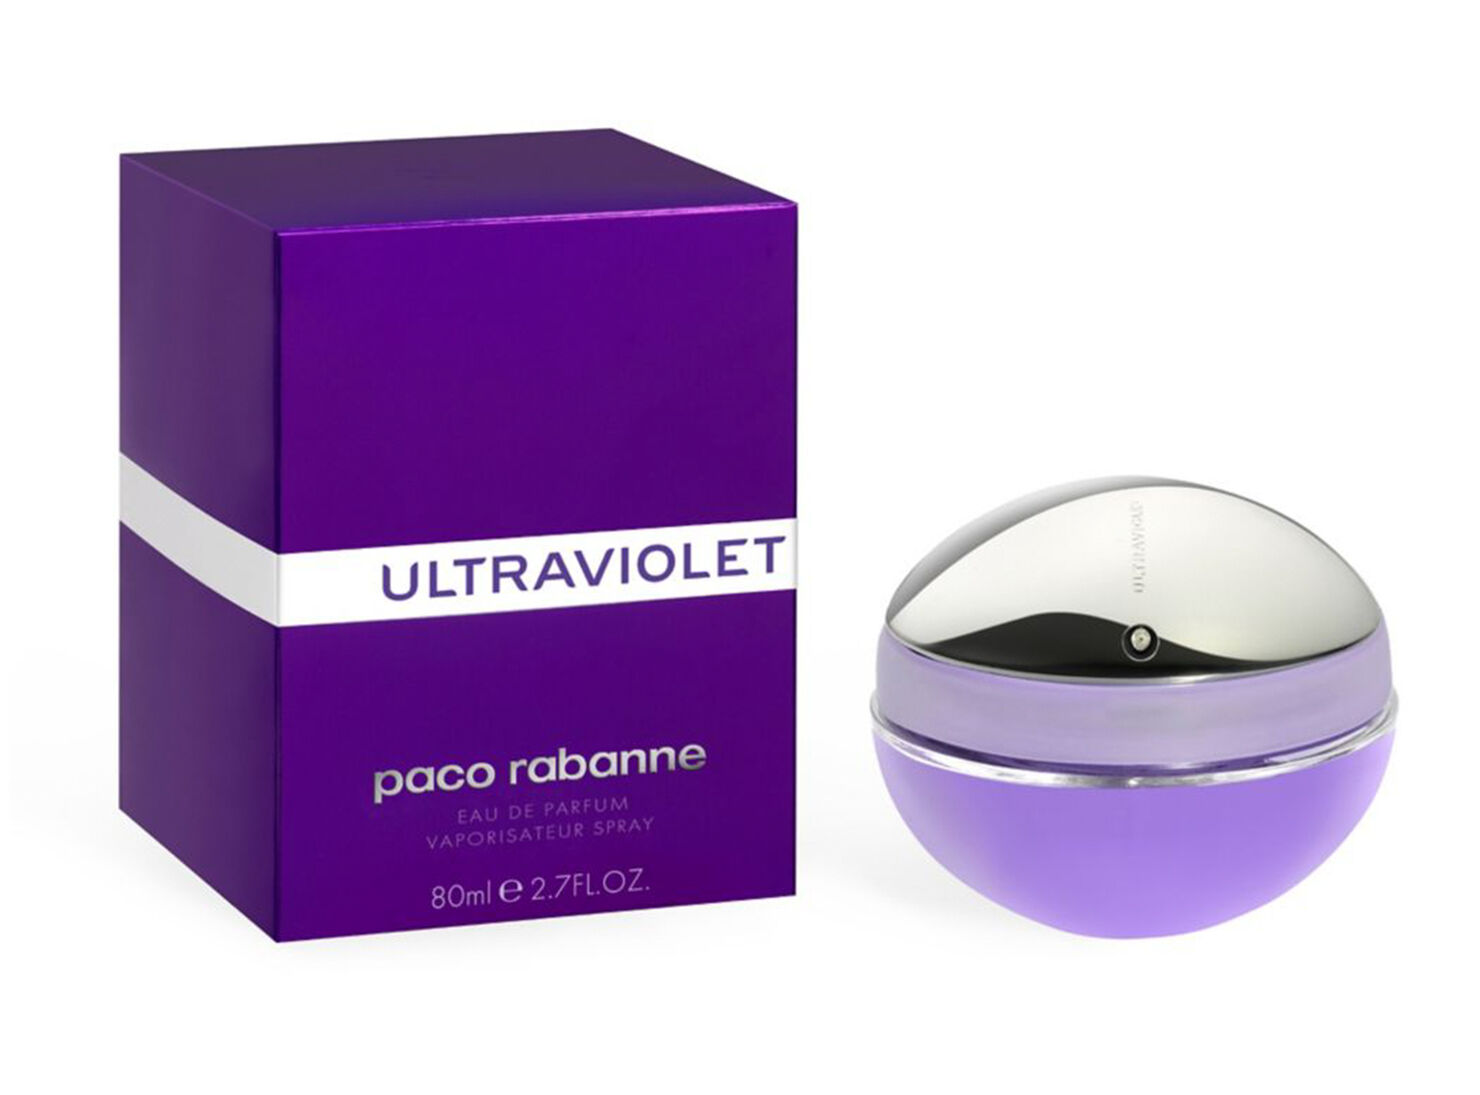 paco rabanne ultraviolet mujer